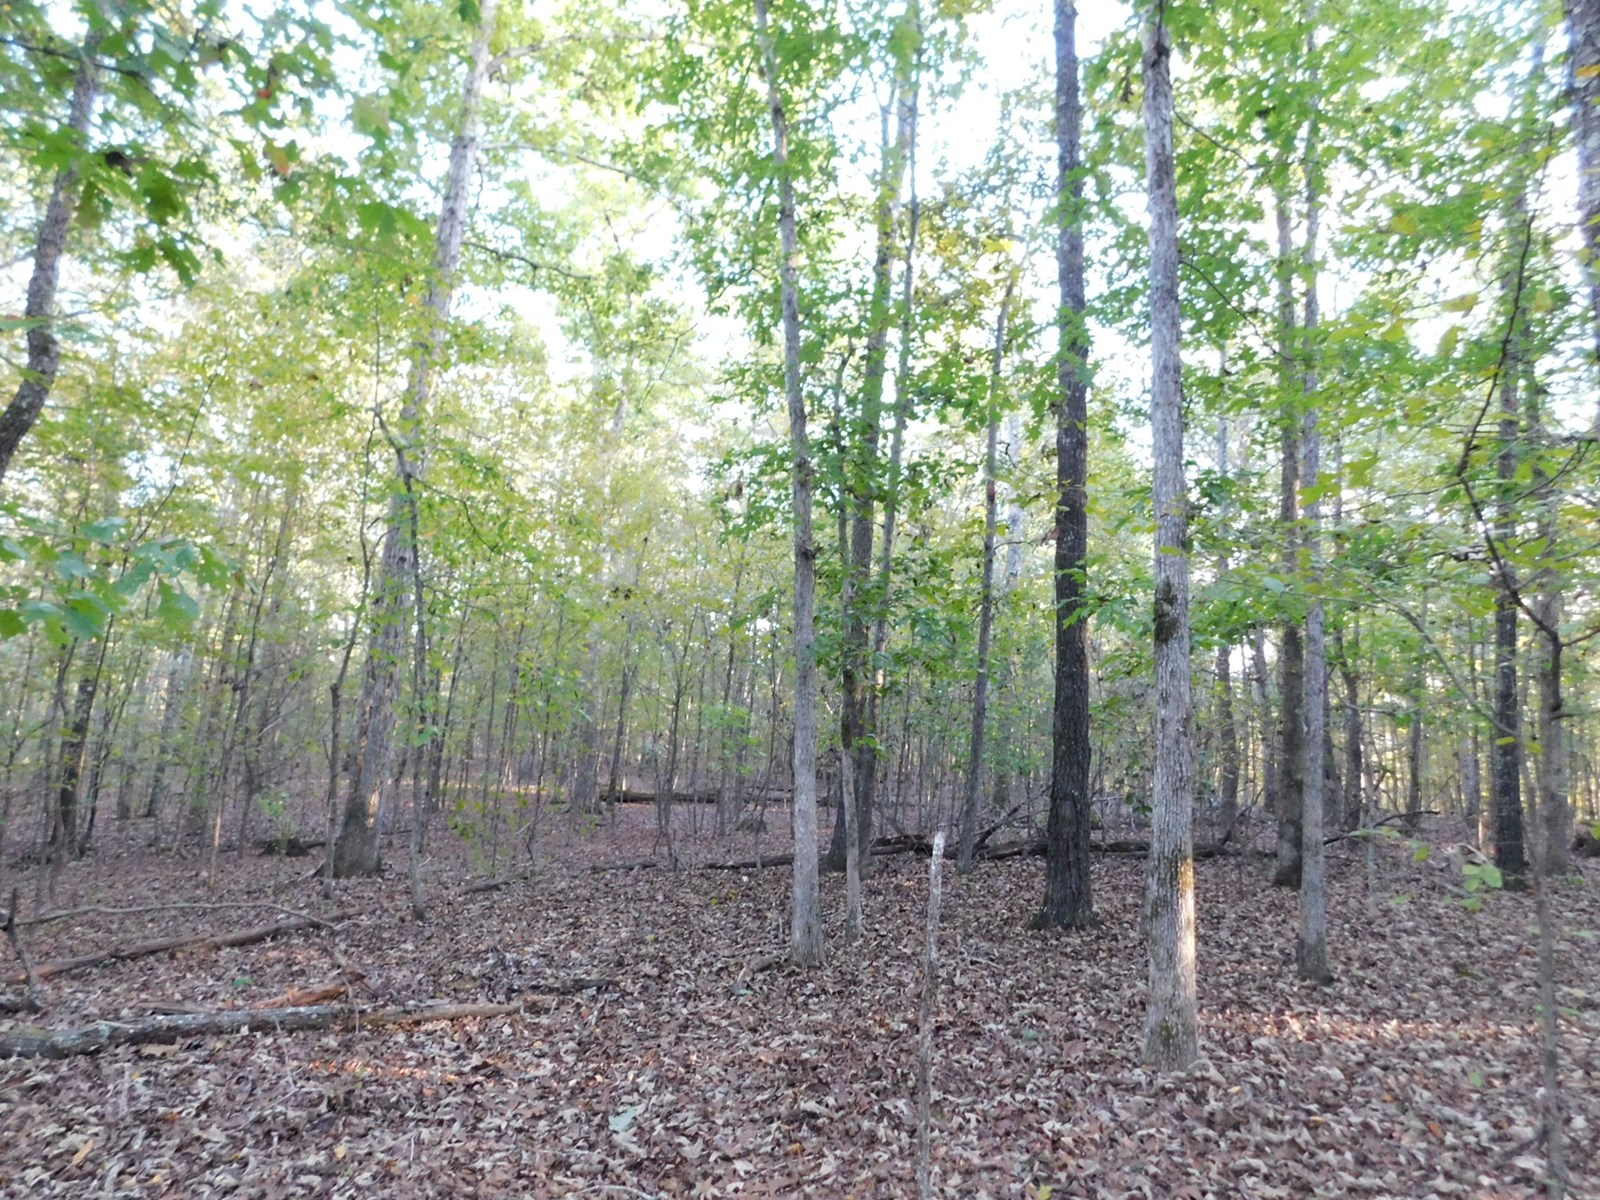 LAND FOR SALE IN TN NEAR FISHING WITH UTILITIES AVAILABLE